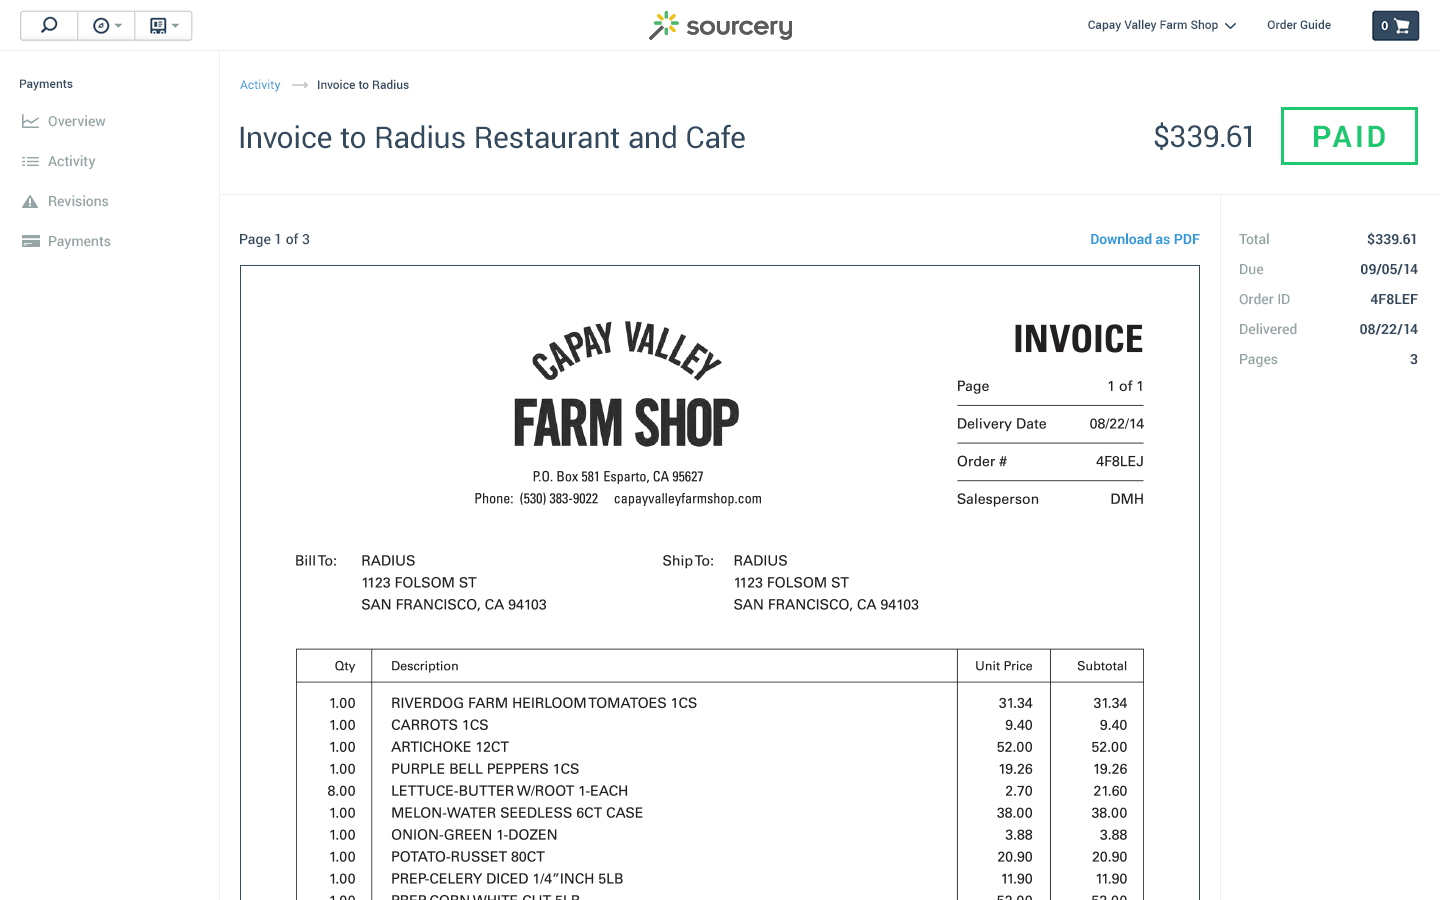 Proatmealus  Remarkable Wholesale Food Vendor Invoicing  Sourcery With Goodlooking Screenshot Of Vendor Storage With Nice Tax Invoice Requirements Ato Also Pay Zipcash Invoice In Addition Excel Invoice Templates Free Download And Find Invoice Price Of New Car By Vin As Well As Invoice Web Additionally Free Invoice Software Uk From Getsourcerycom With Proatmealus  Goodlooking Wholesale Food Vendor Invoicing  Sourcery With Nice Screenshot Of Vendor Storage And Remarkable Tax Invoice Requirements Ato Also Pay Zipcash Invoice In Addition Excel Invoice Templates Free Download From Getsourcerycom